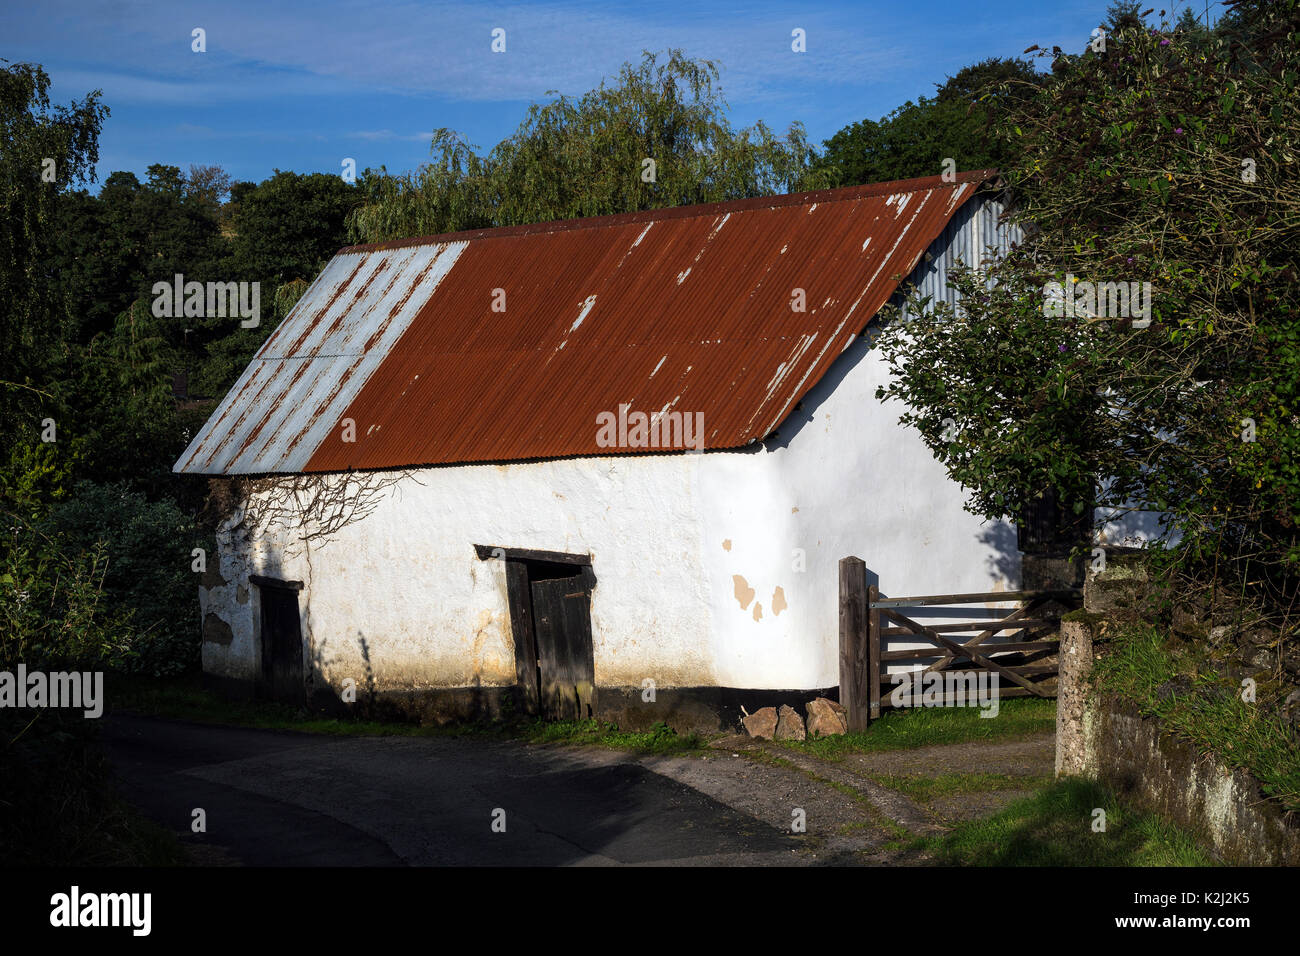 Devon cob barns in rural lane near Dunsford,corrugated tin roofs,lintels,Agricultural range of cladding,winding lanes - Stock Image